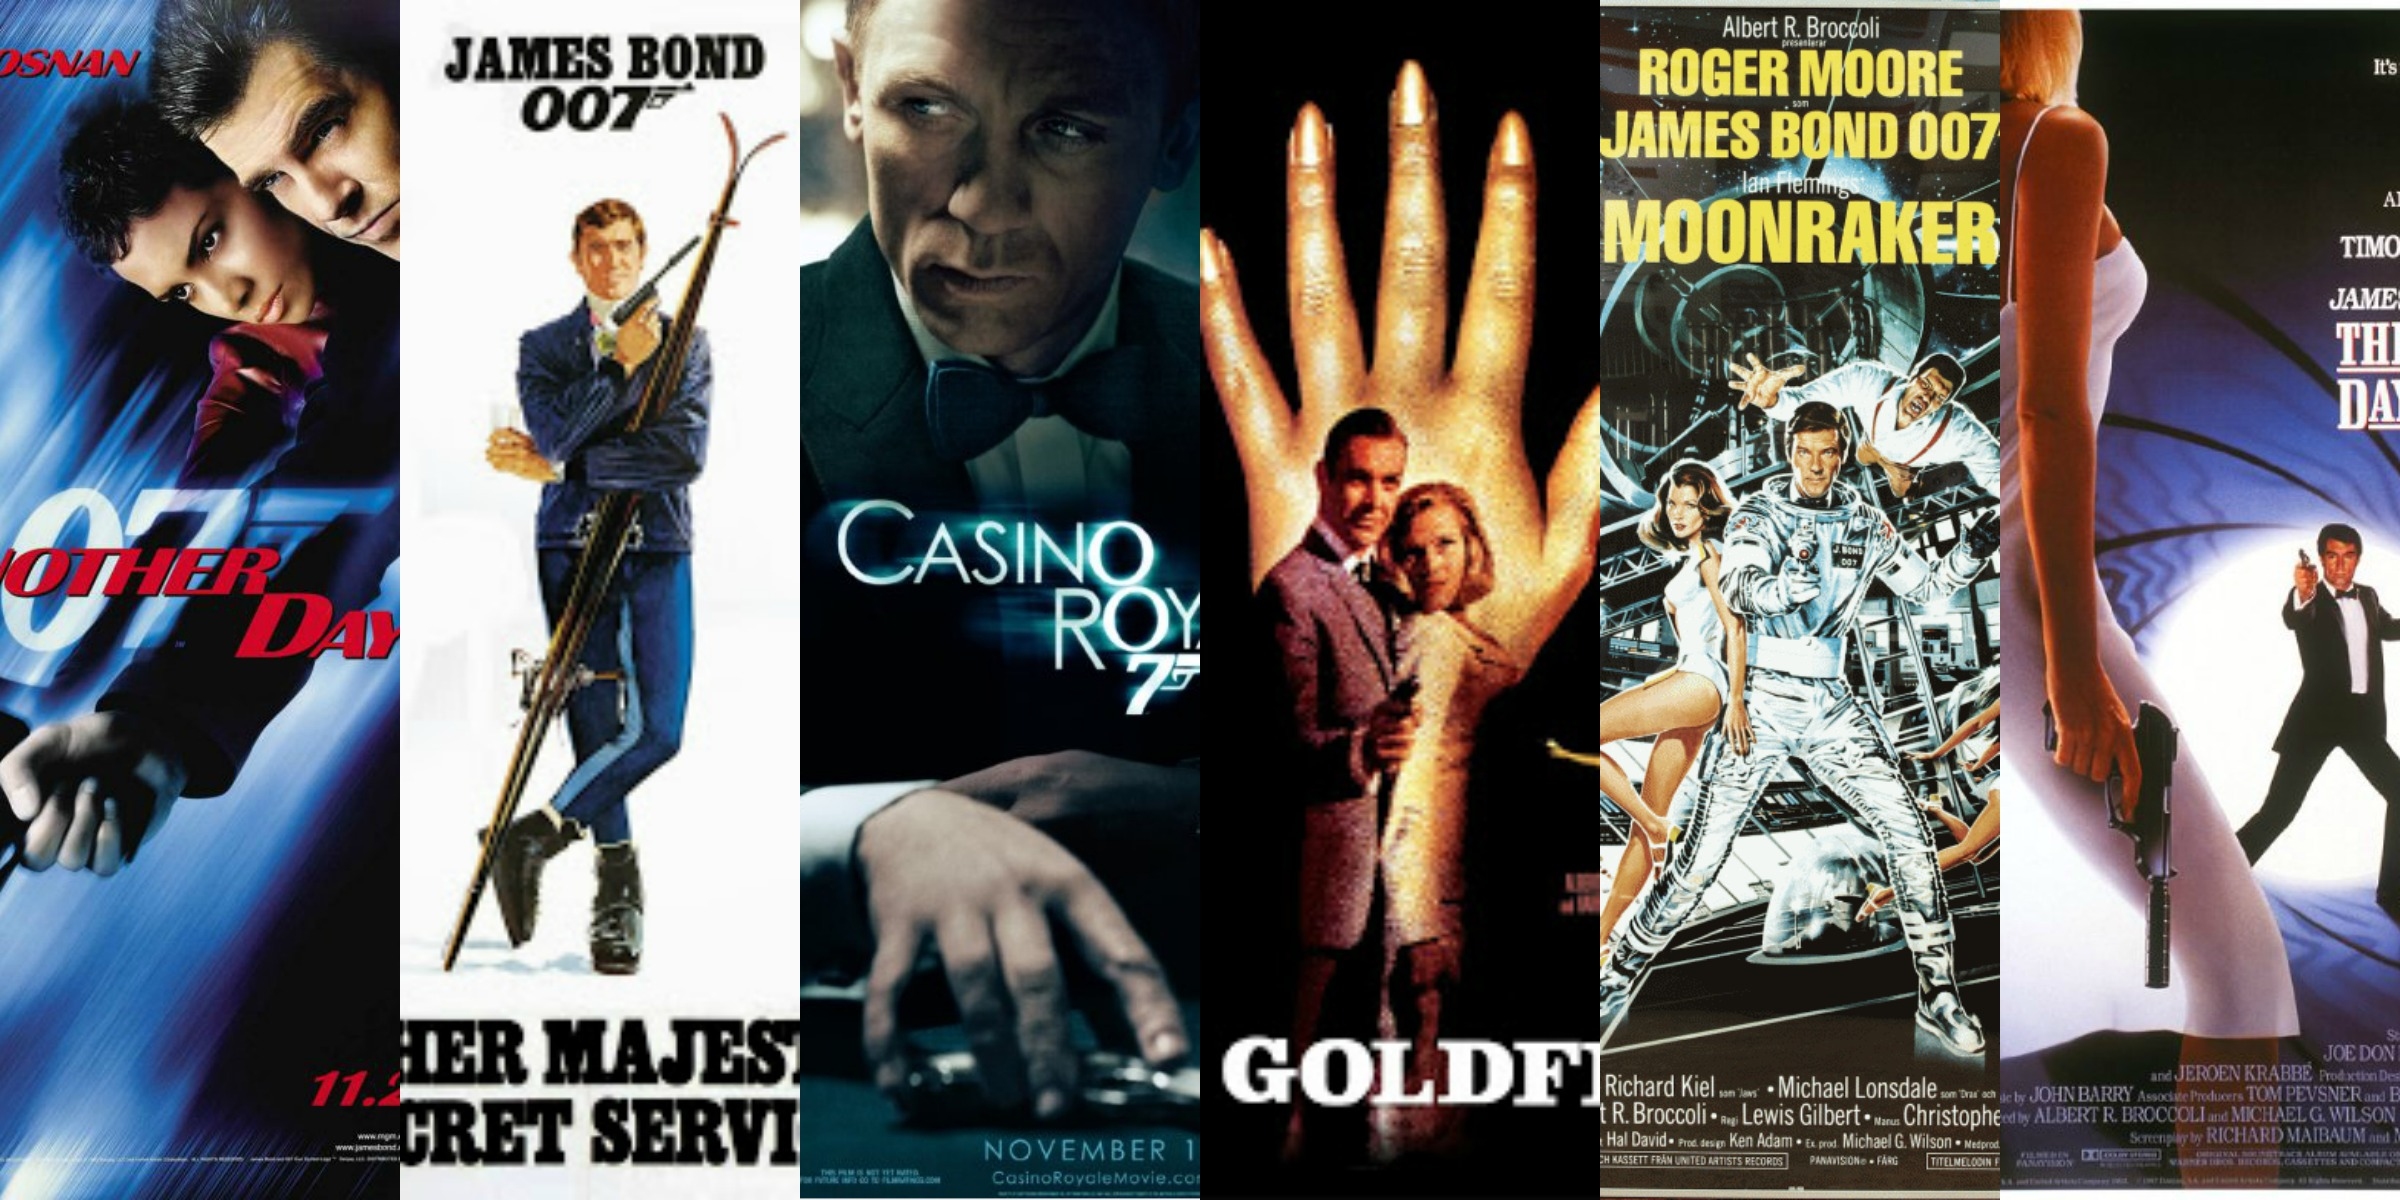 every james bond movie listed and ranked � supposedly fun